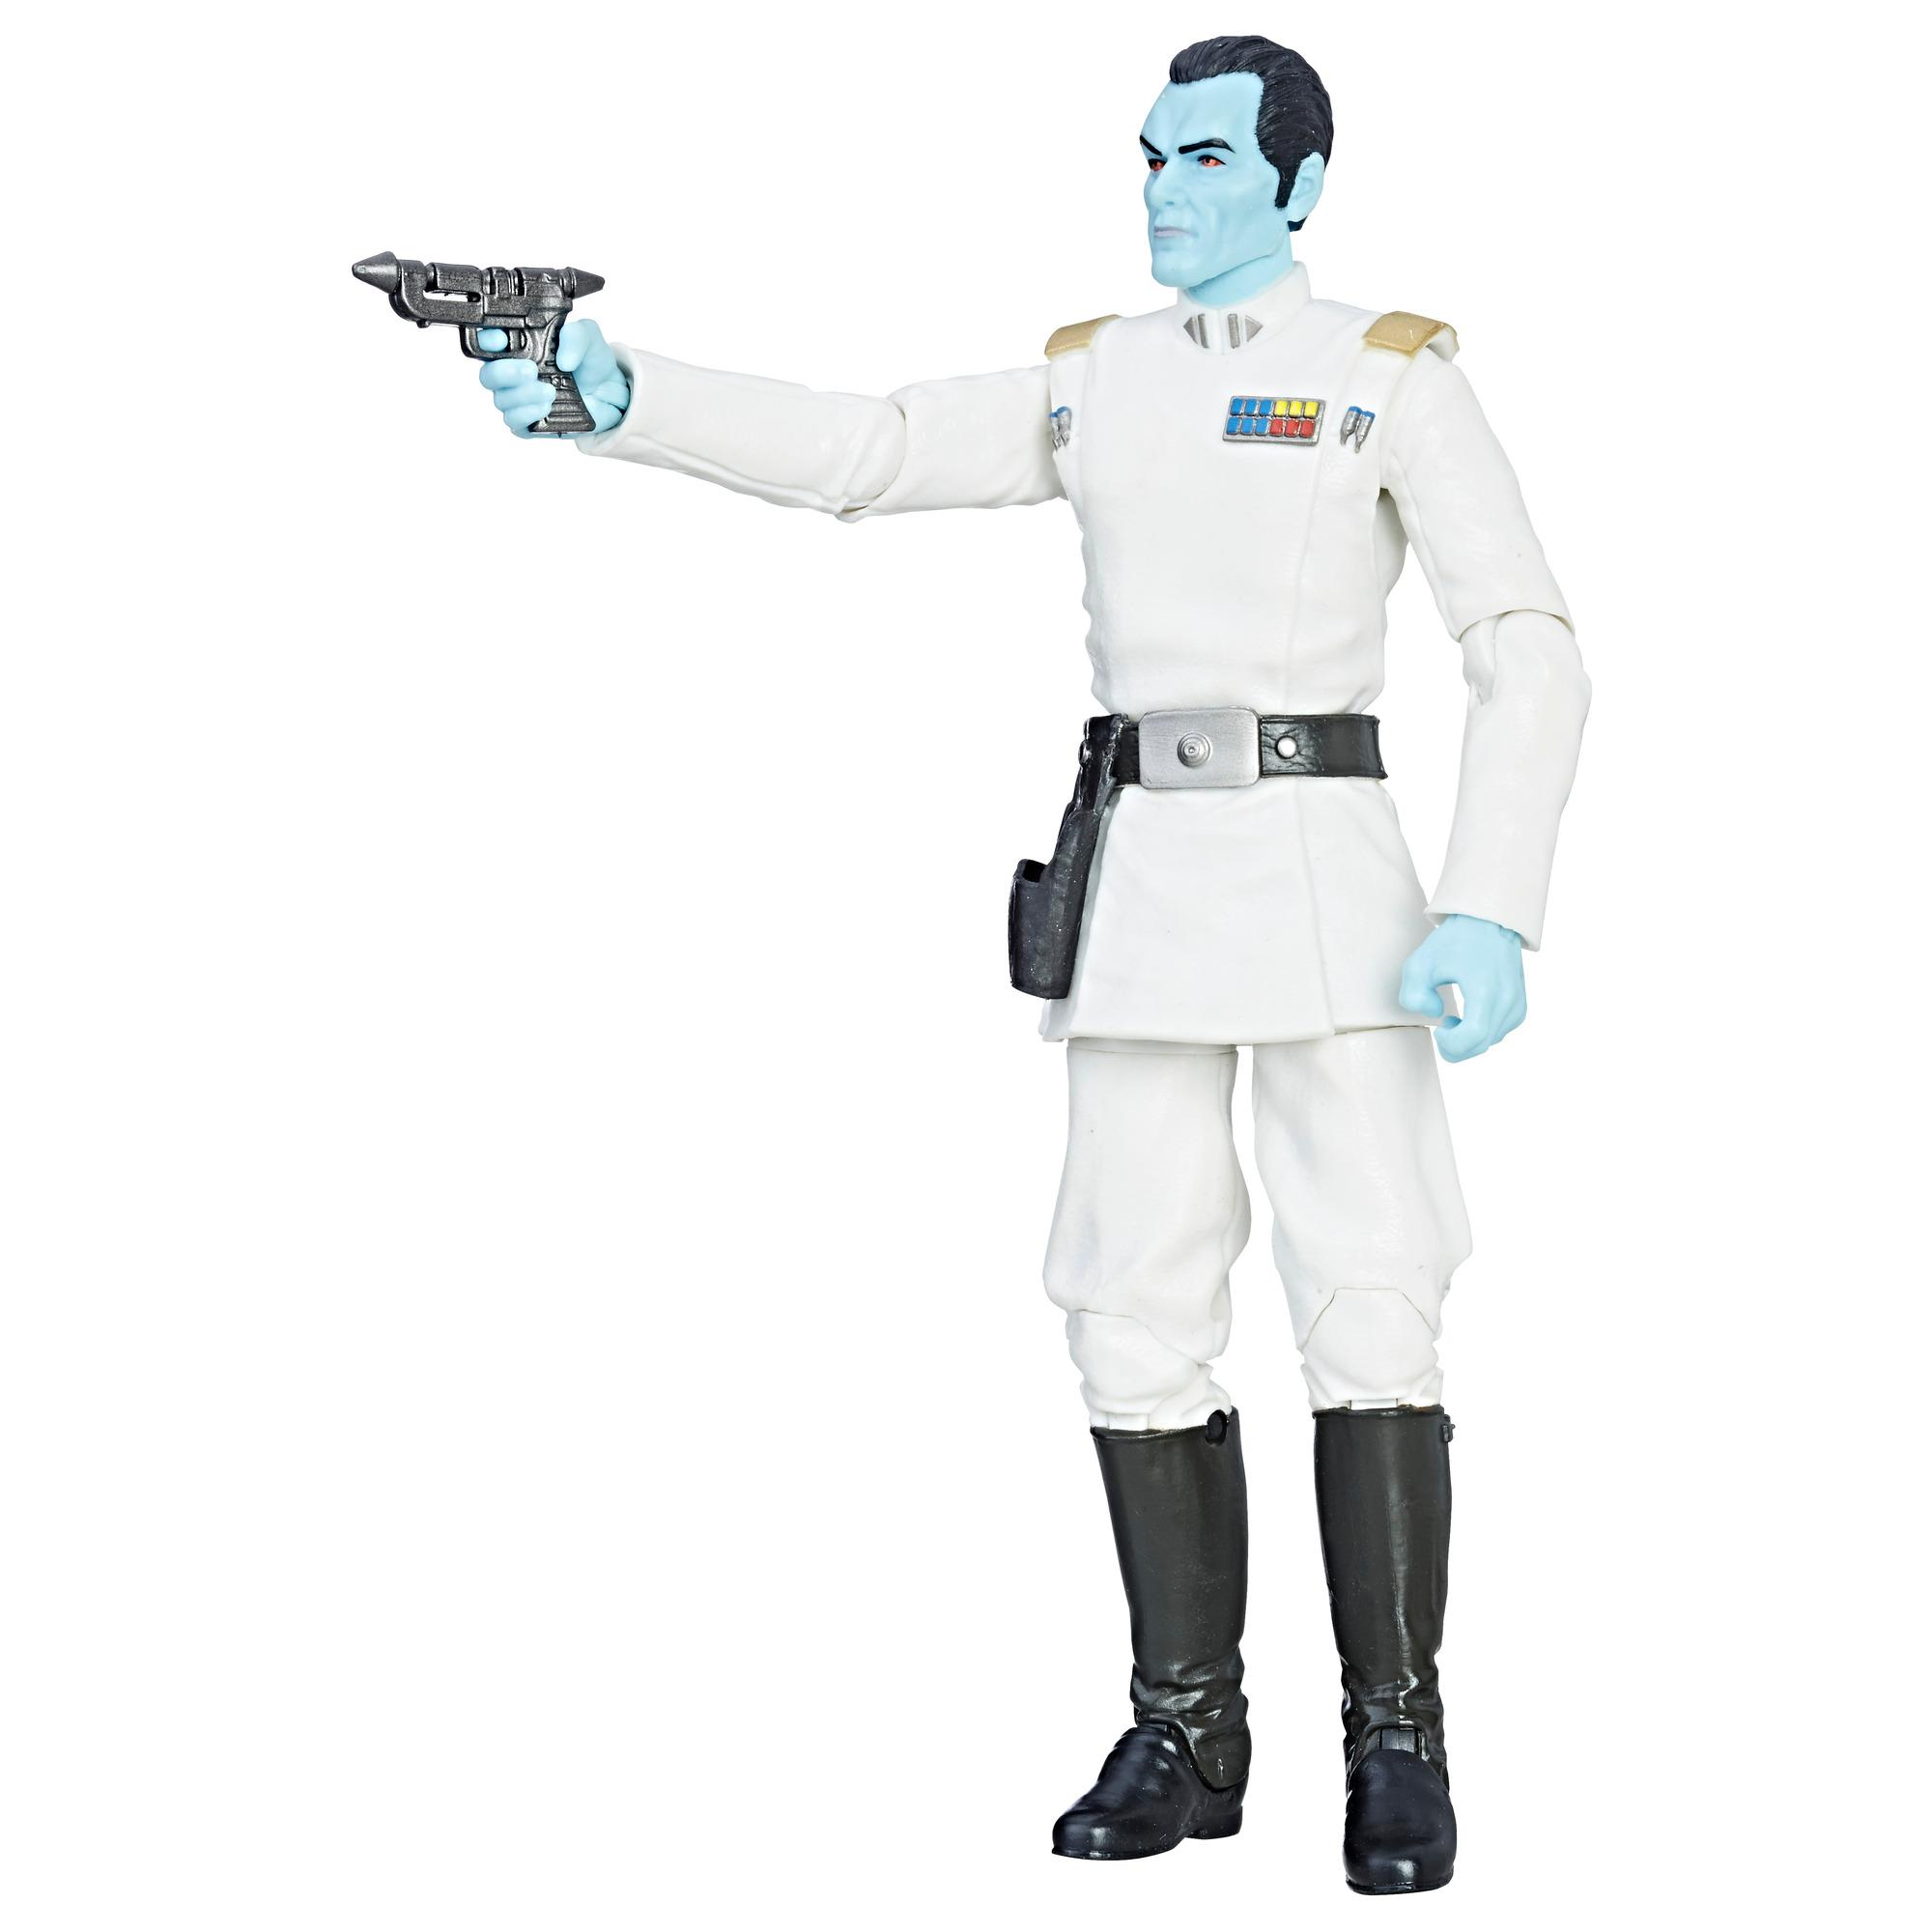 Star Wars The Black Series Grand Admiral Thrawn